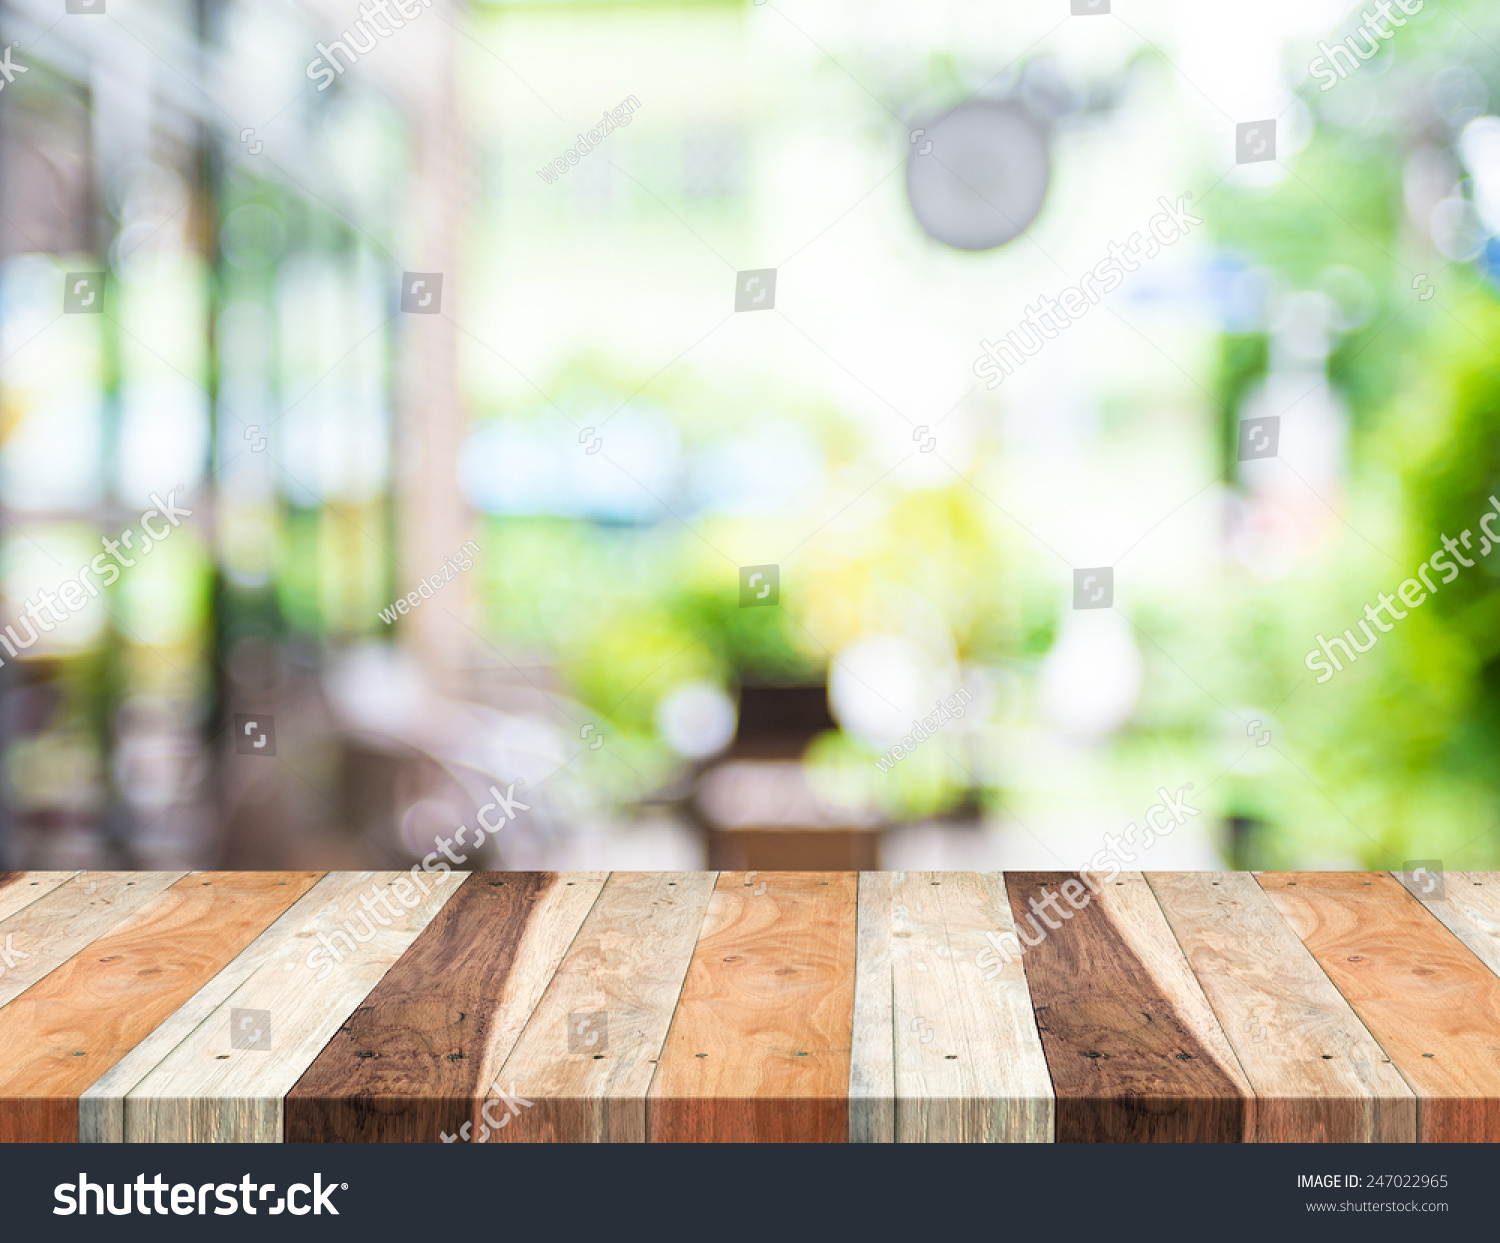 Empty tropical wood table blurred garden stock photo for Table background